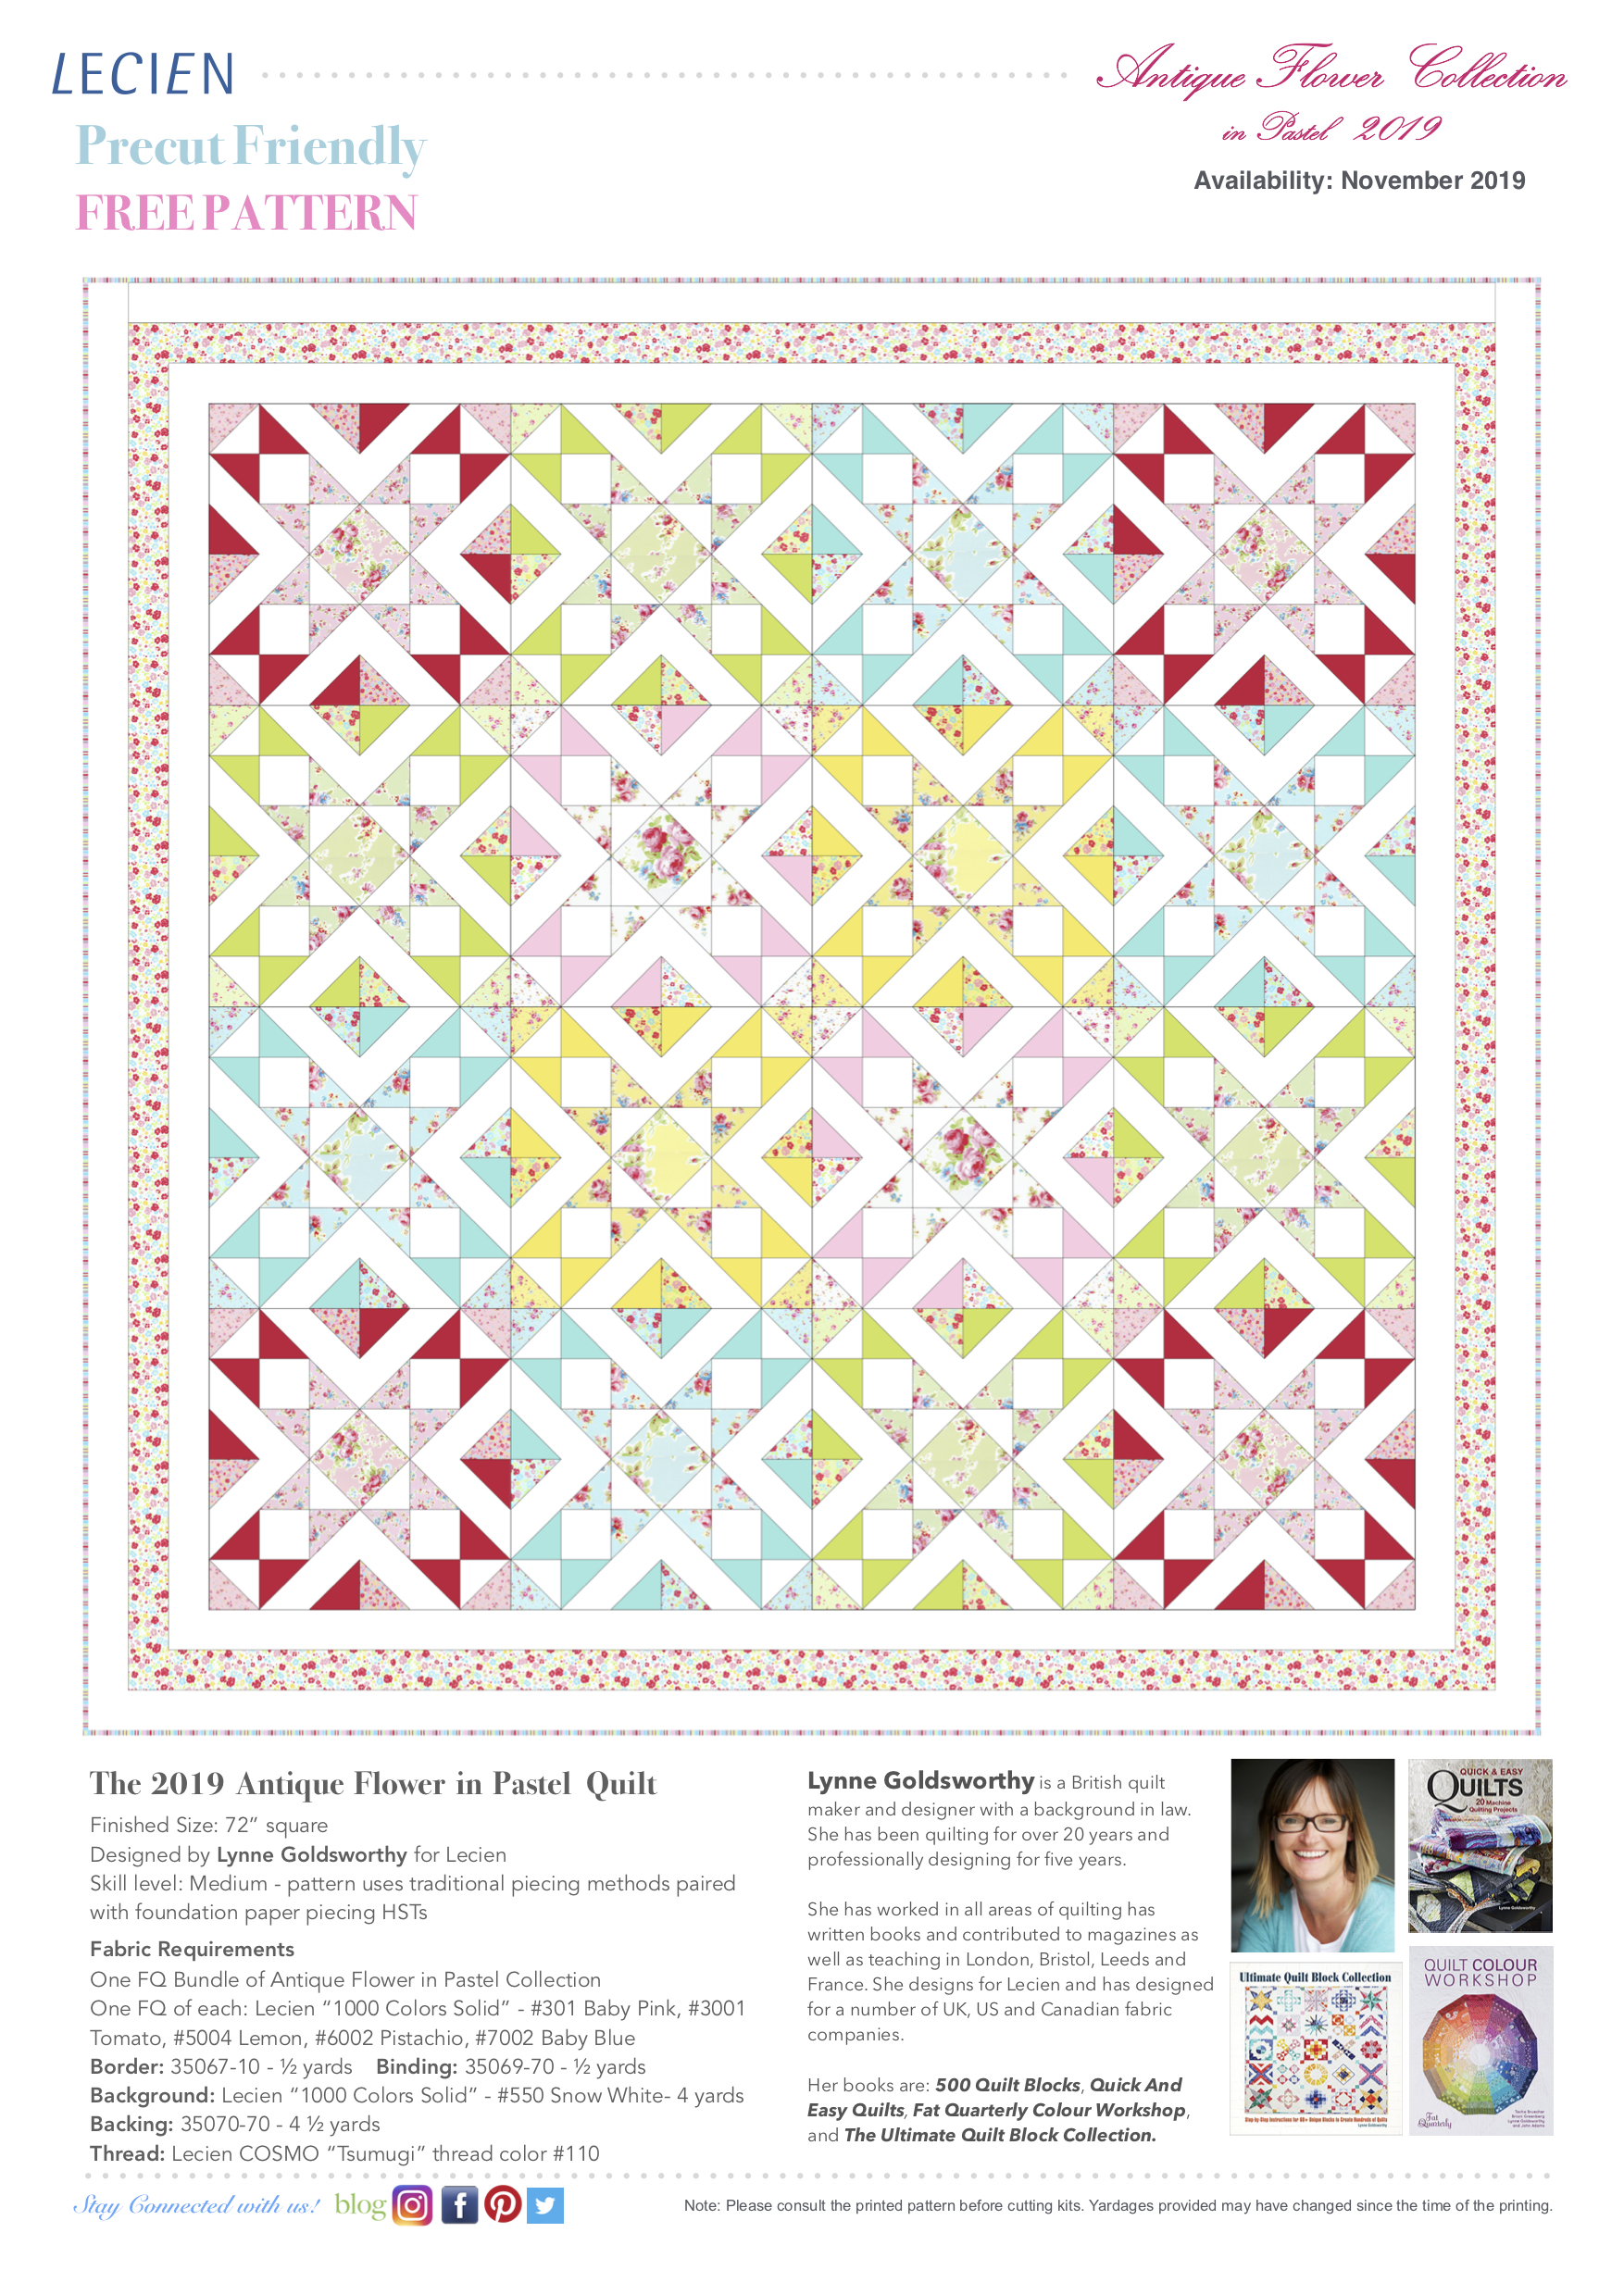 The 2019 Antique Flower in Pastel Quilt